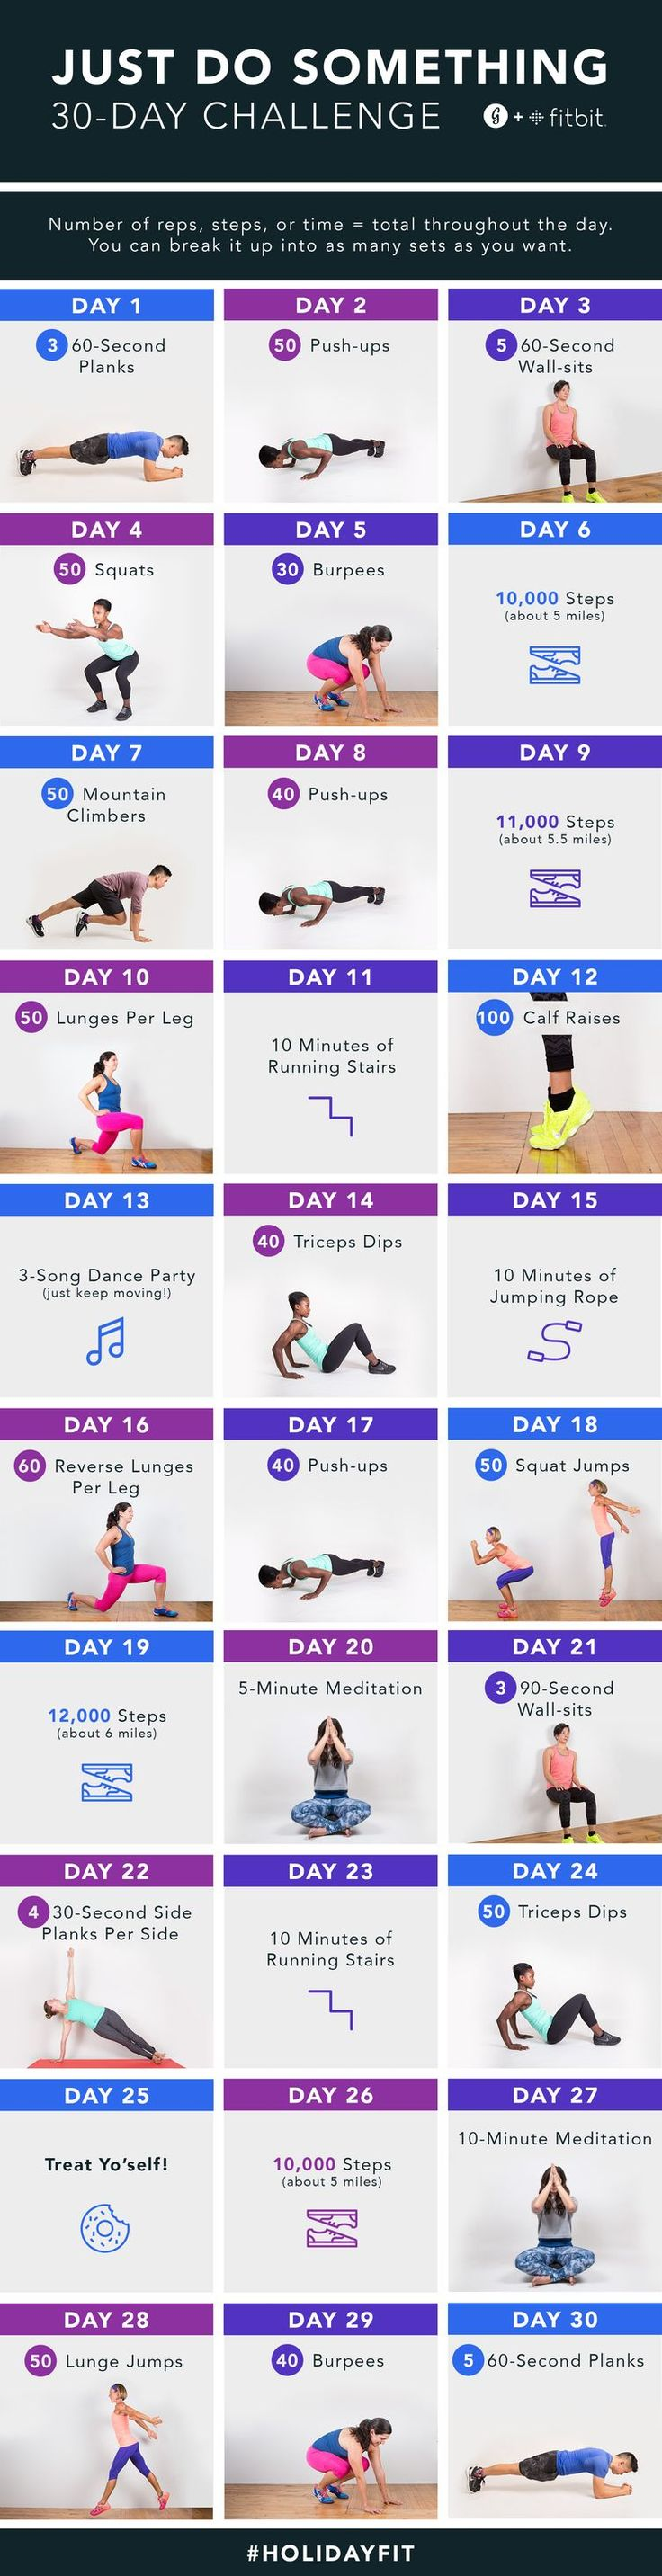 Greatist and Fitbit's 30-Day, Just-Do Something Challenge